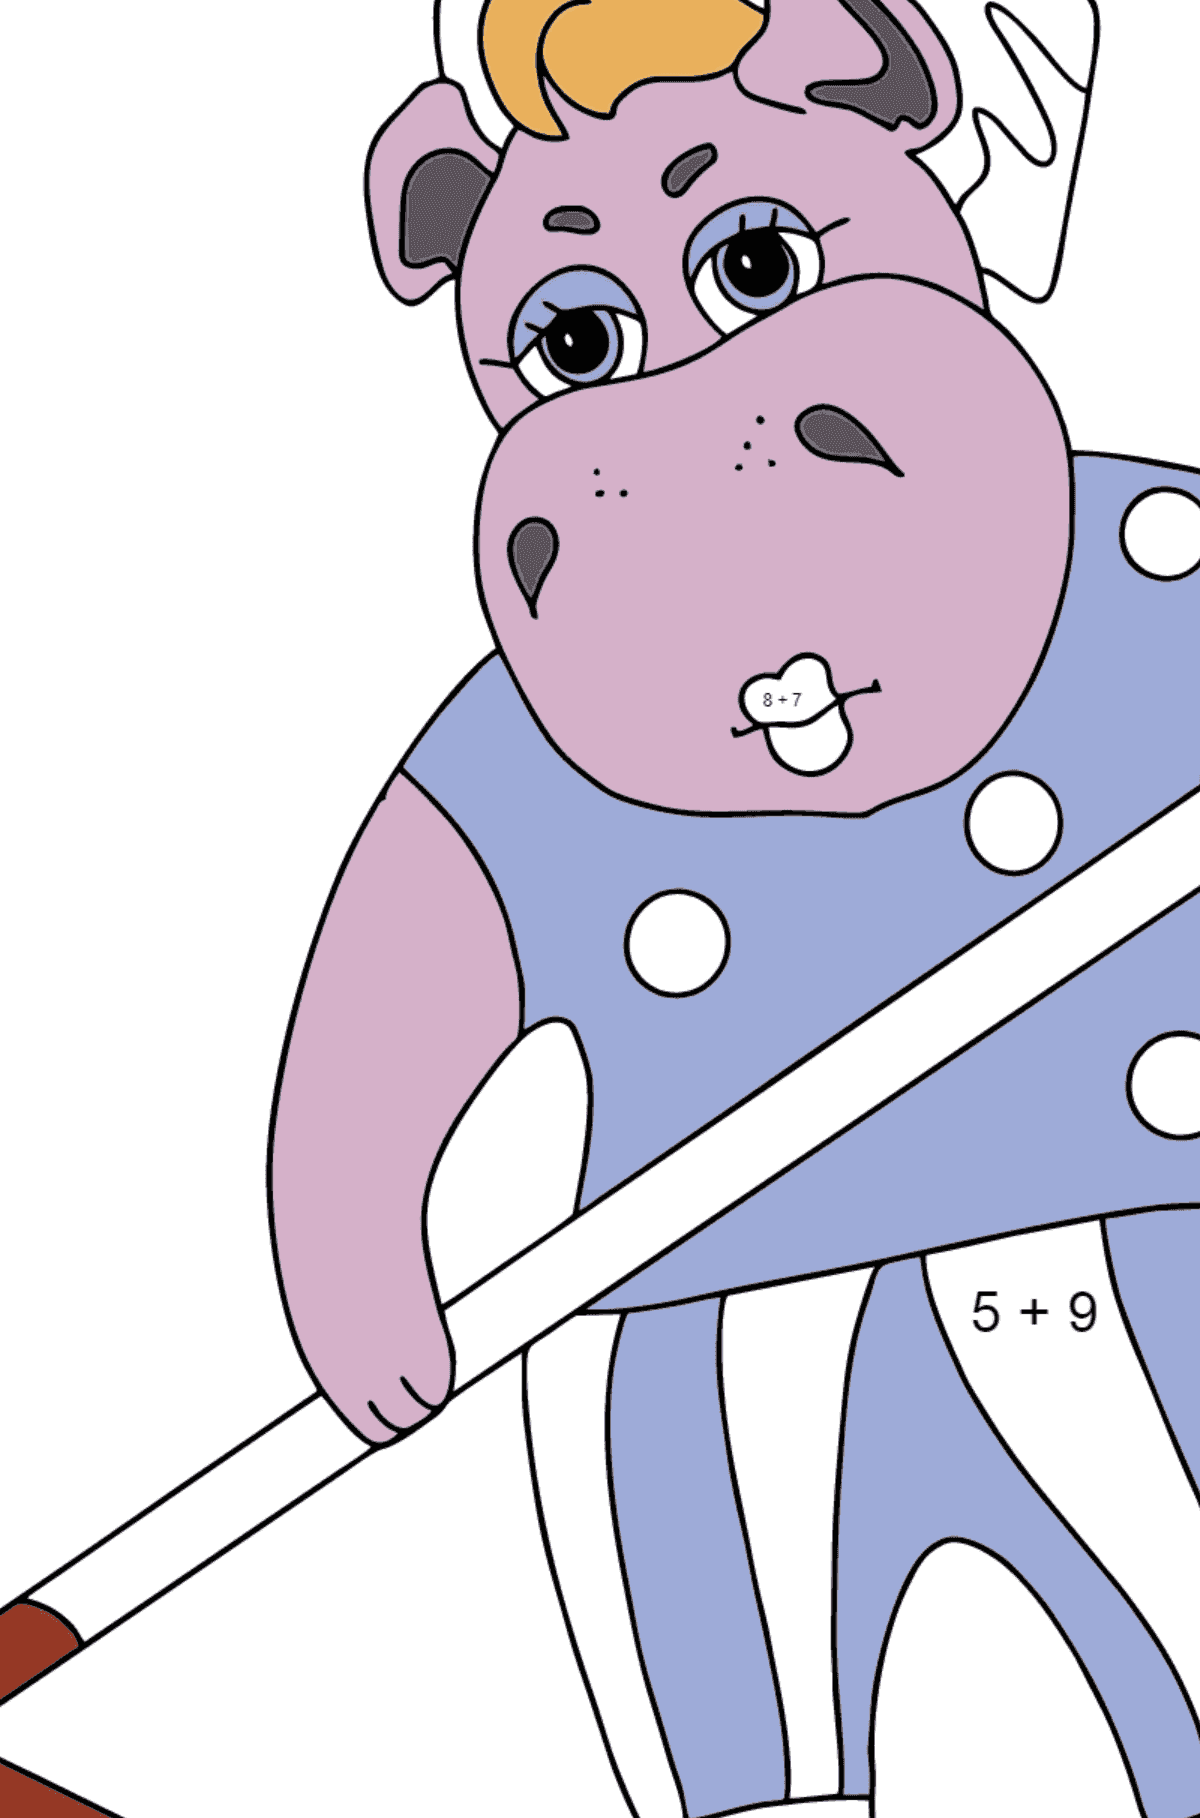 Coloring Page - A Hippo is Collecting Autumn Leaves for Kids  - Color by Number Addition